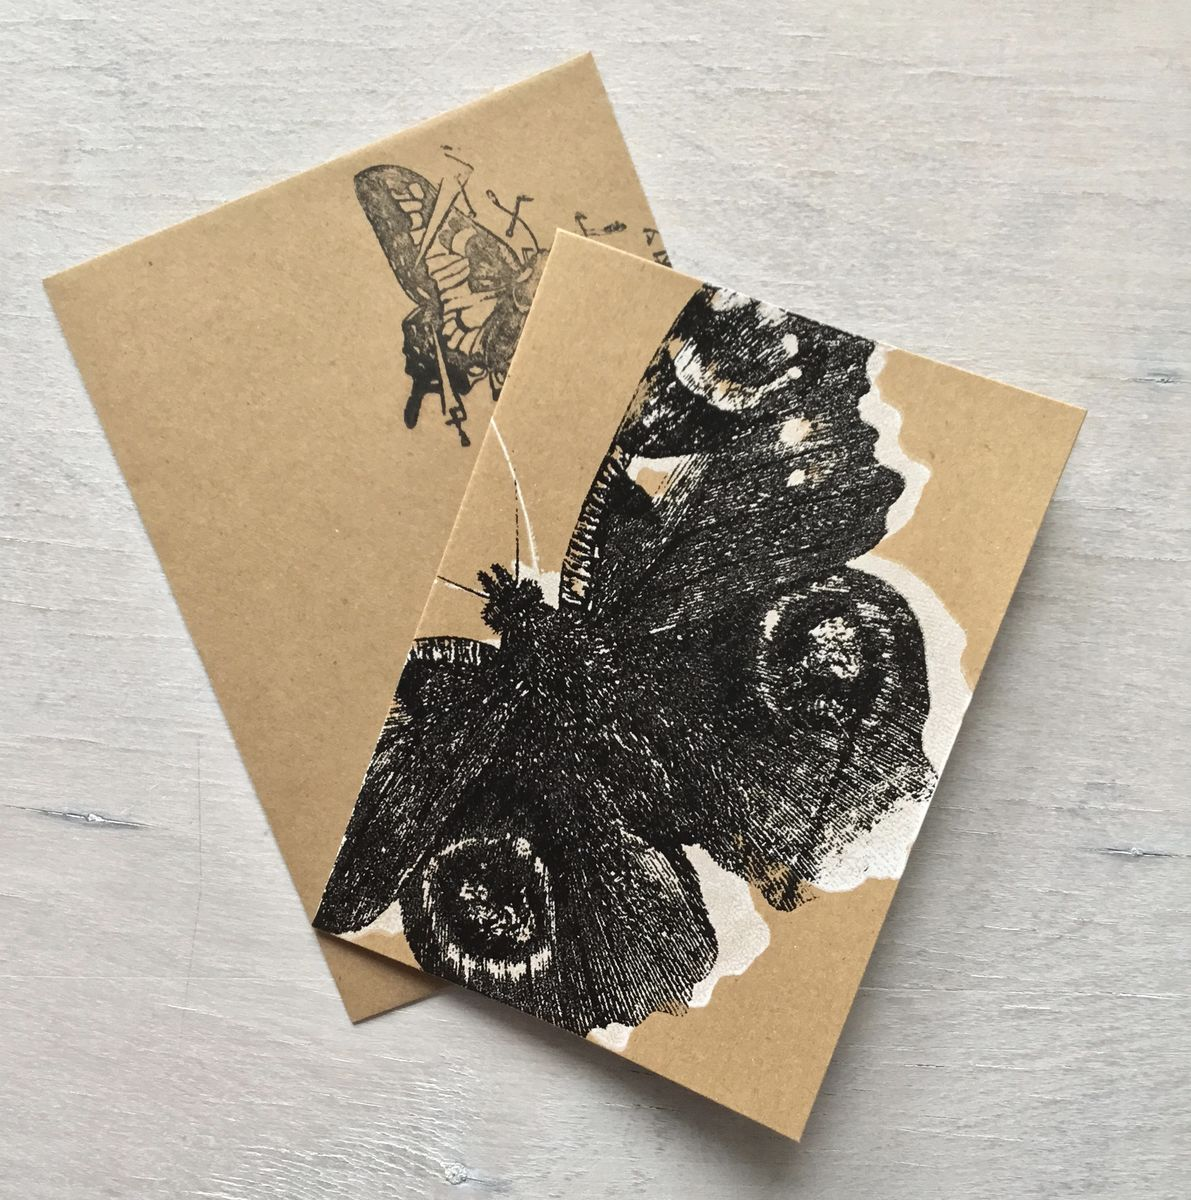 Black Peacock greetings card - product image